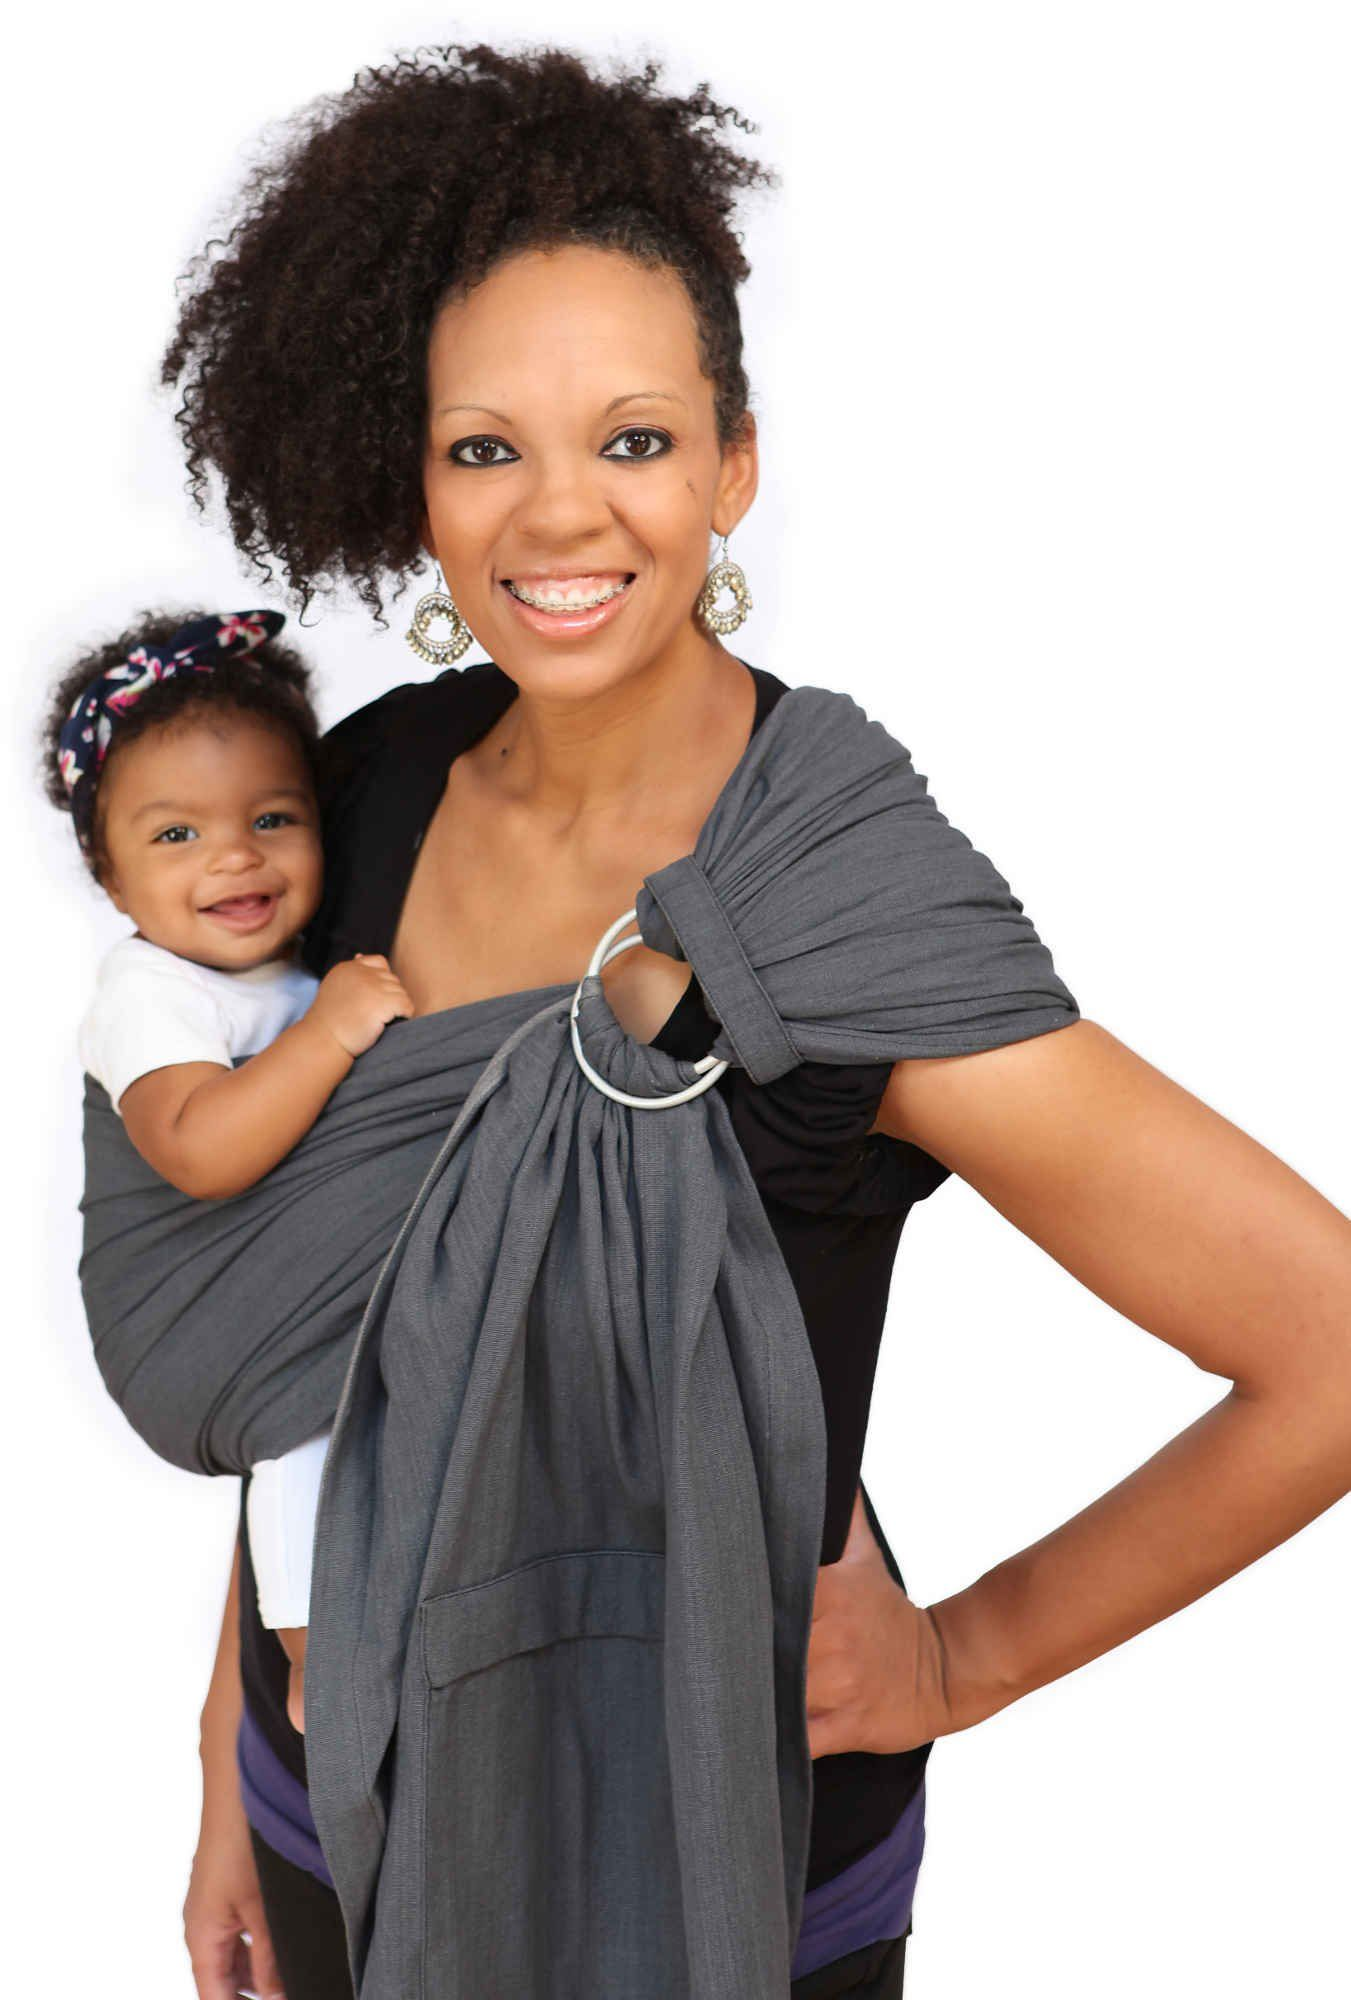 Maya Wrap Comfortfit Ring Sling Baby Carrier Graphite Medium With Images Ring Sling Baby Carrier Maya Wrap Baby Carrier